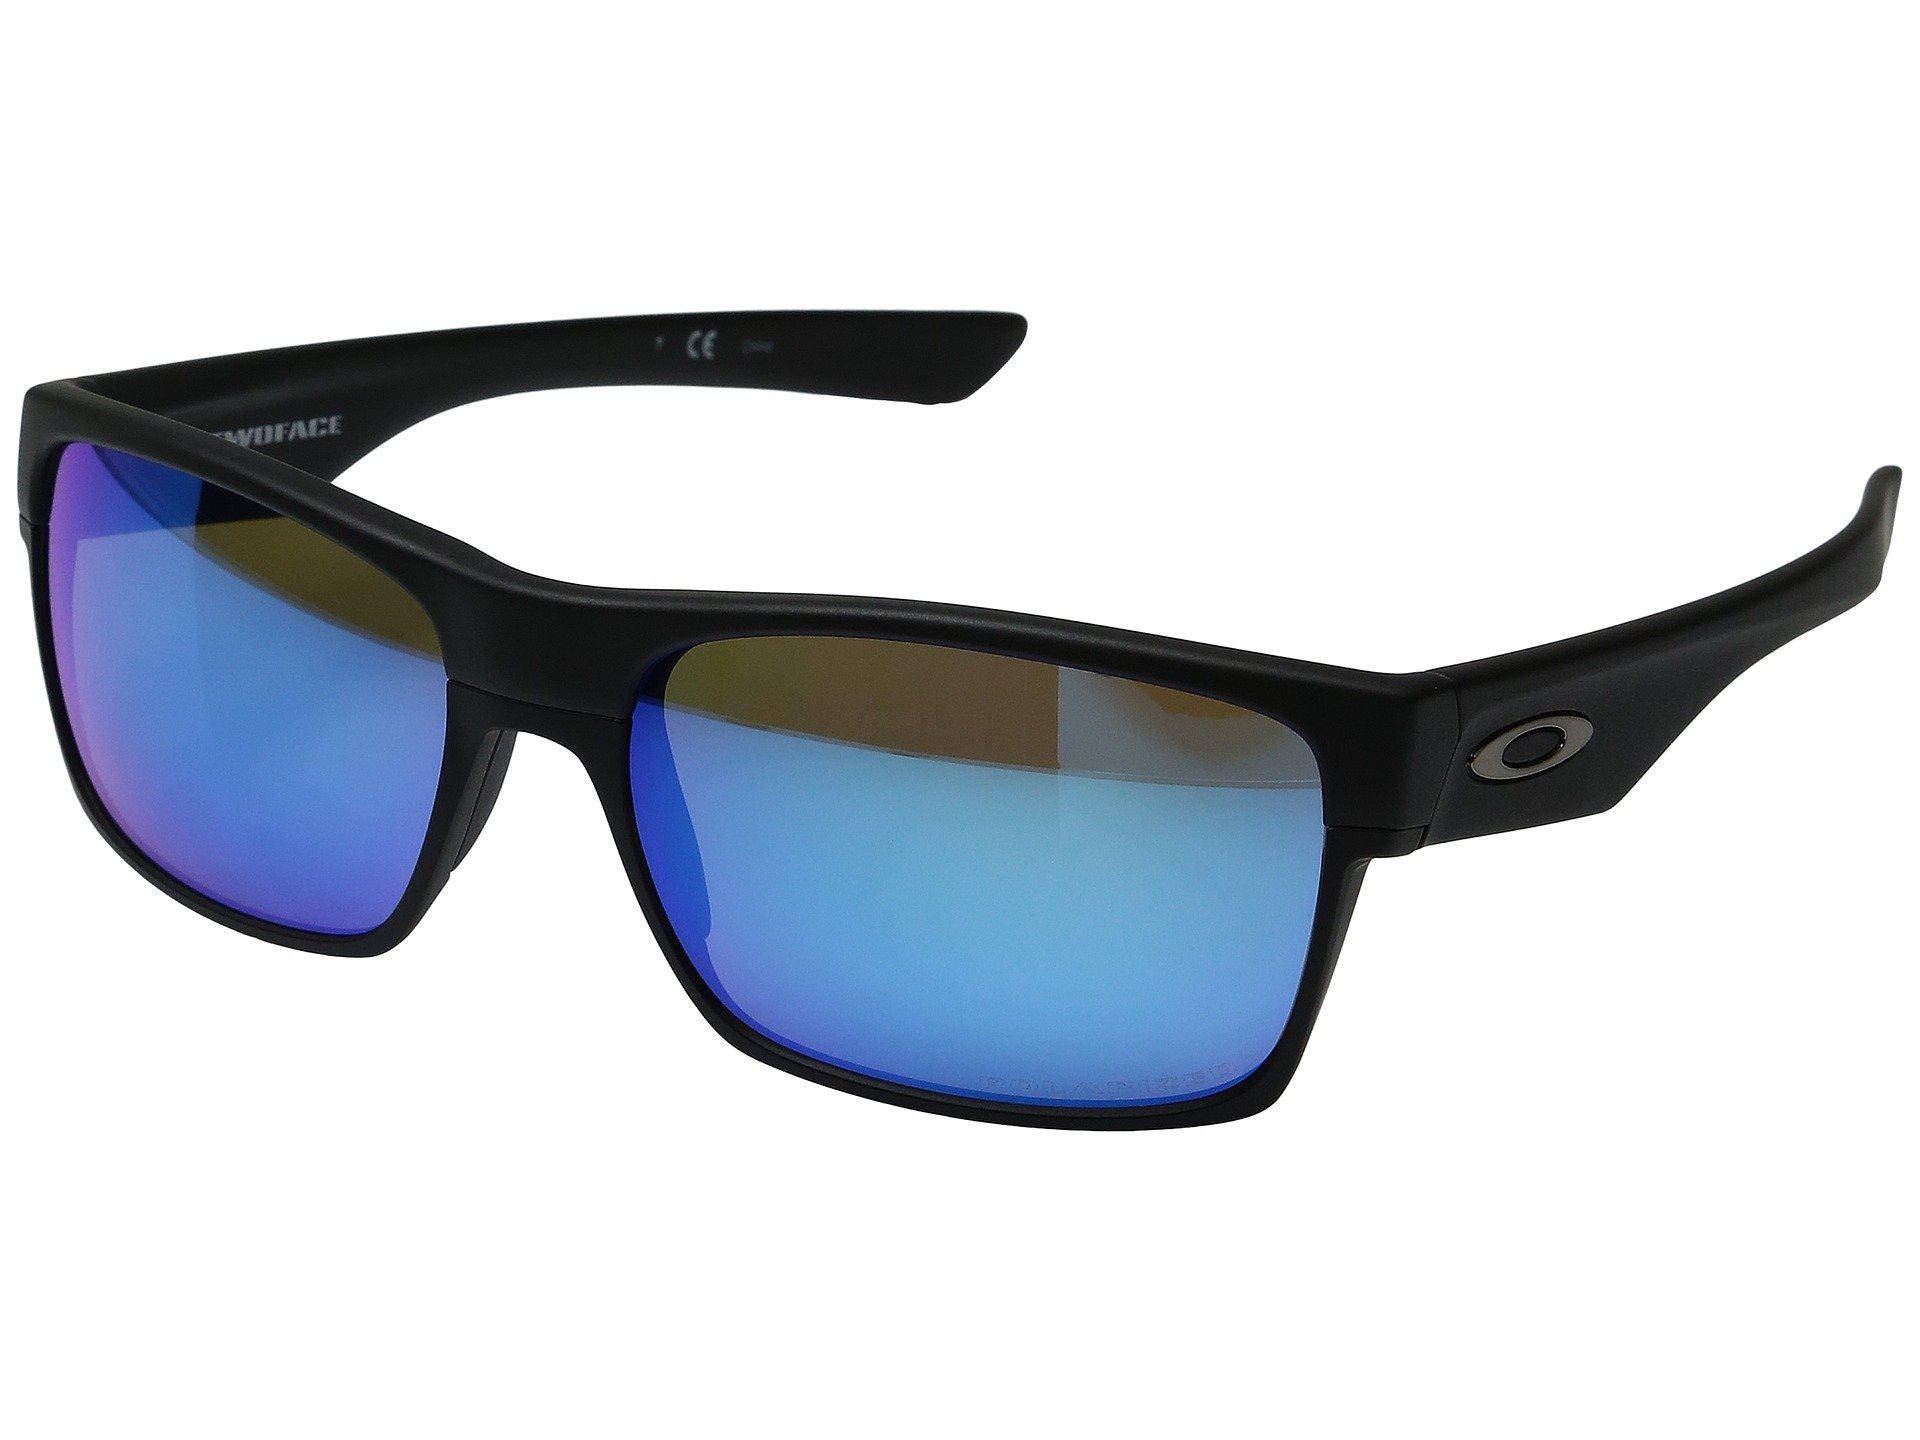 622b1e3850f Oakley. Men s Two Face (matte Black sapphire Iridium Polarized) Fashion  Sunglasses